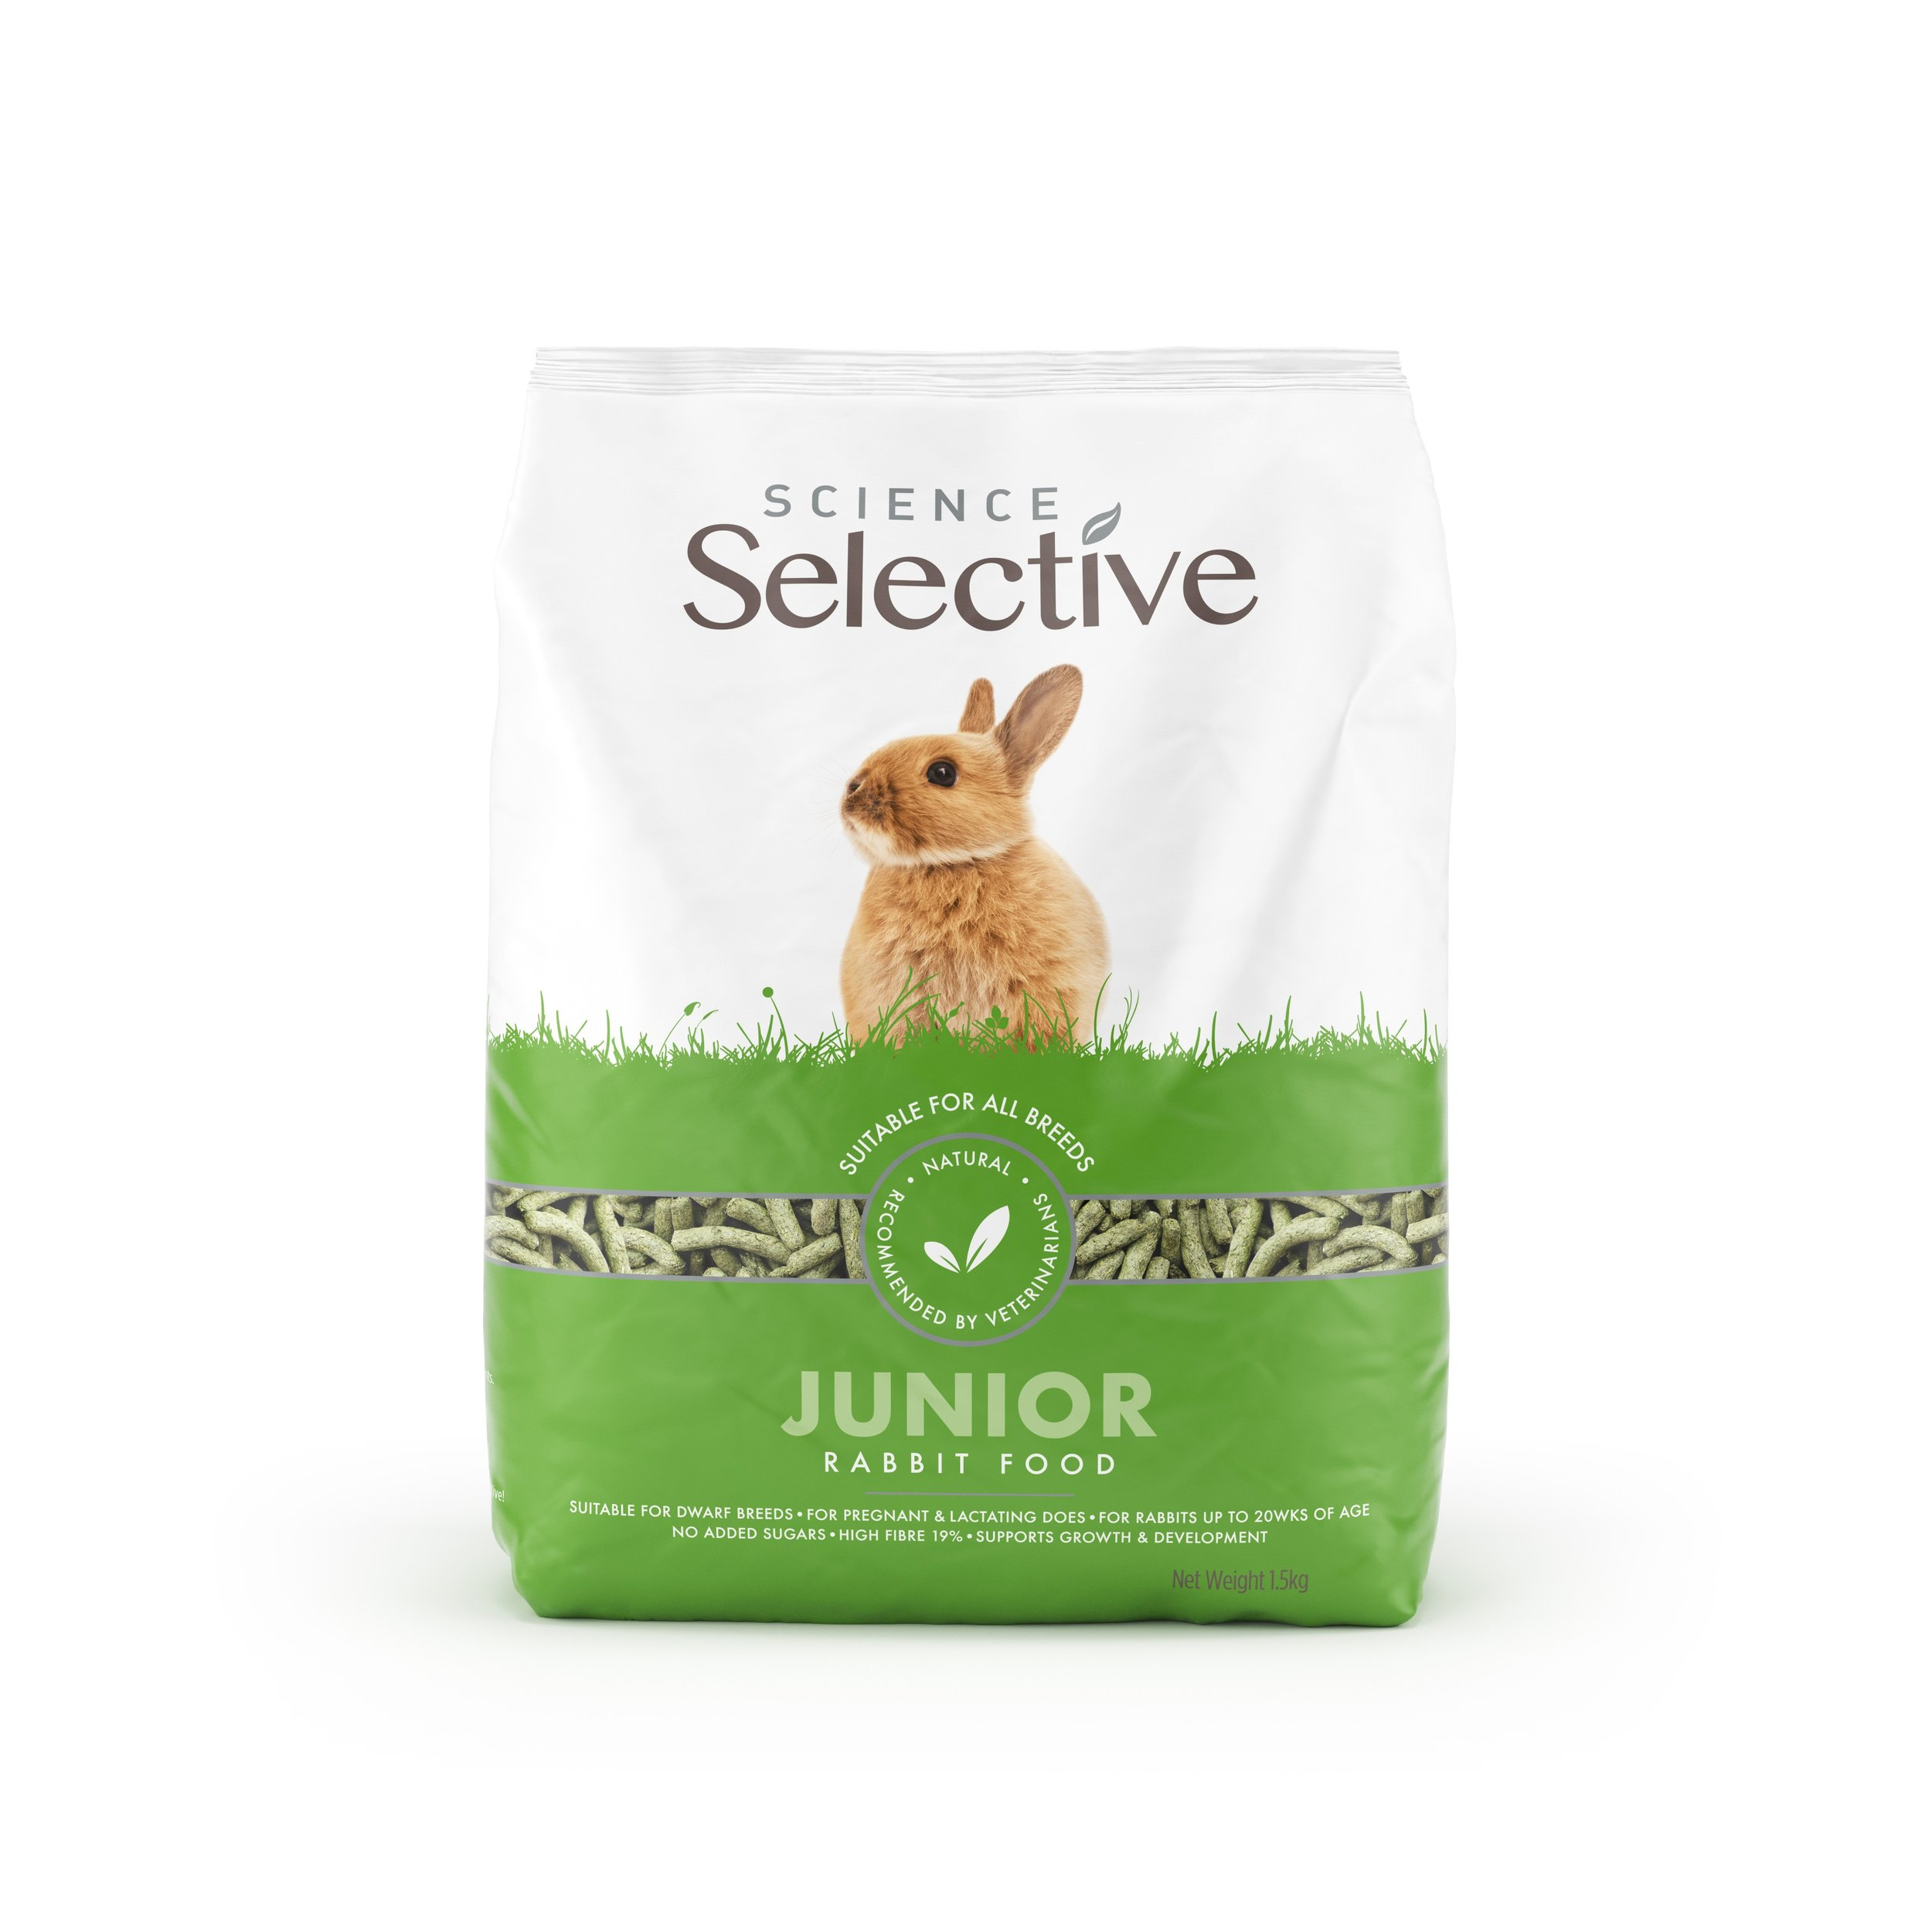 New Design for Supreme Petfoods' Selective Range by Cowan London